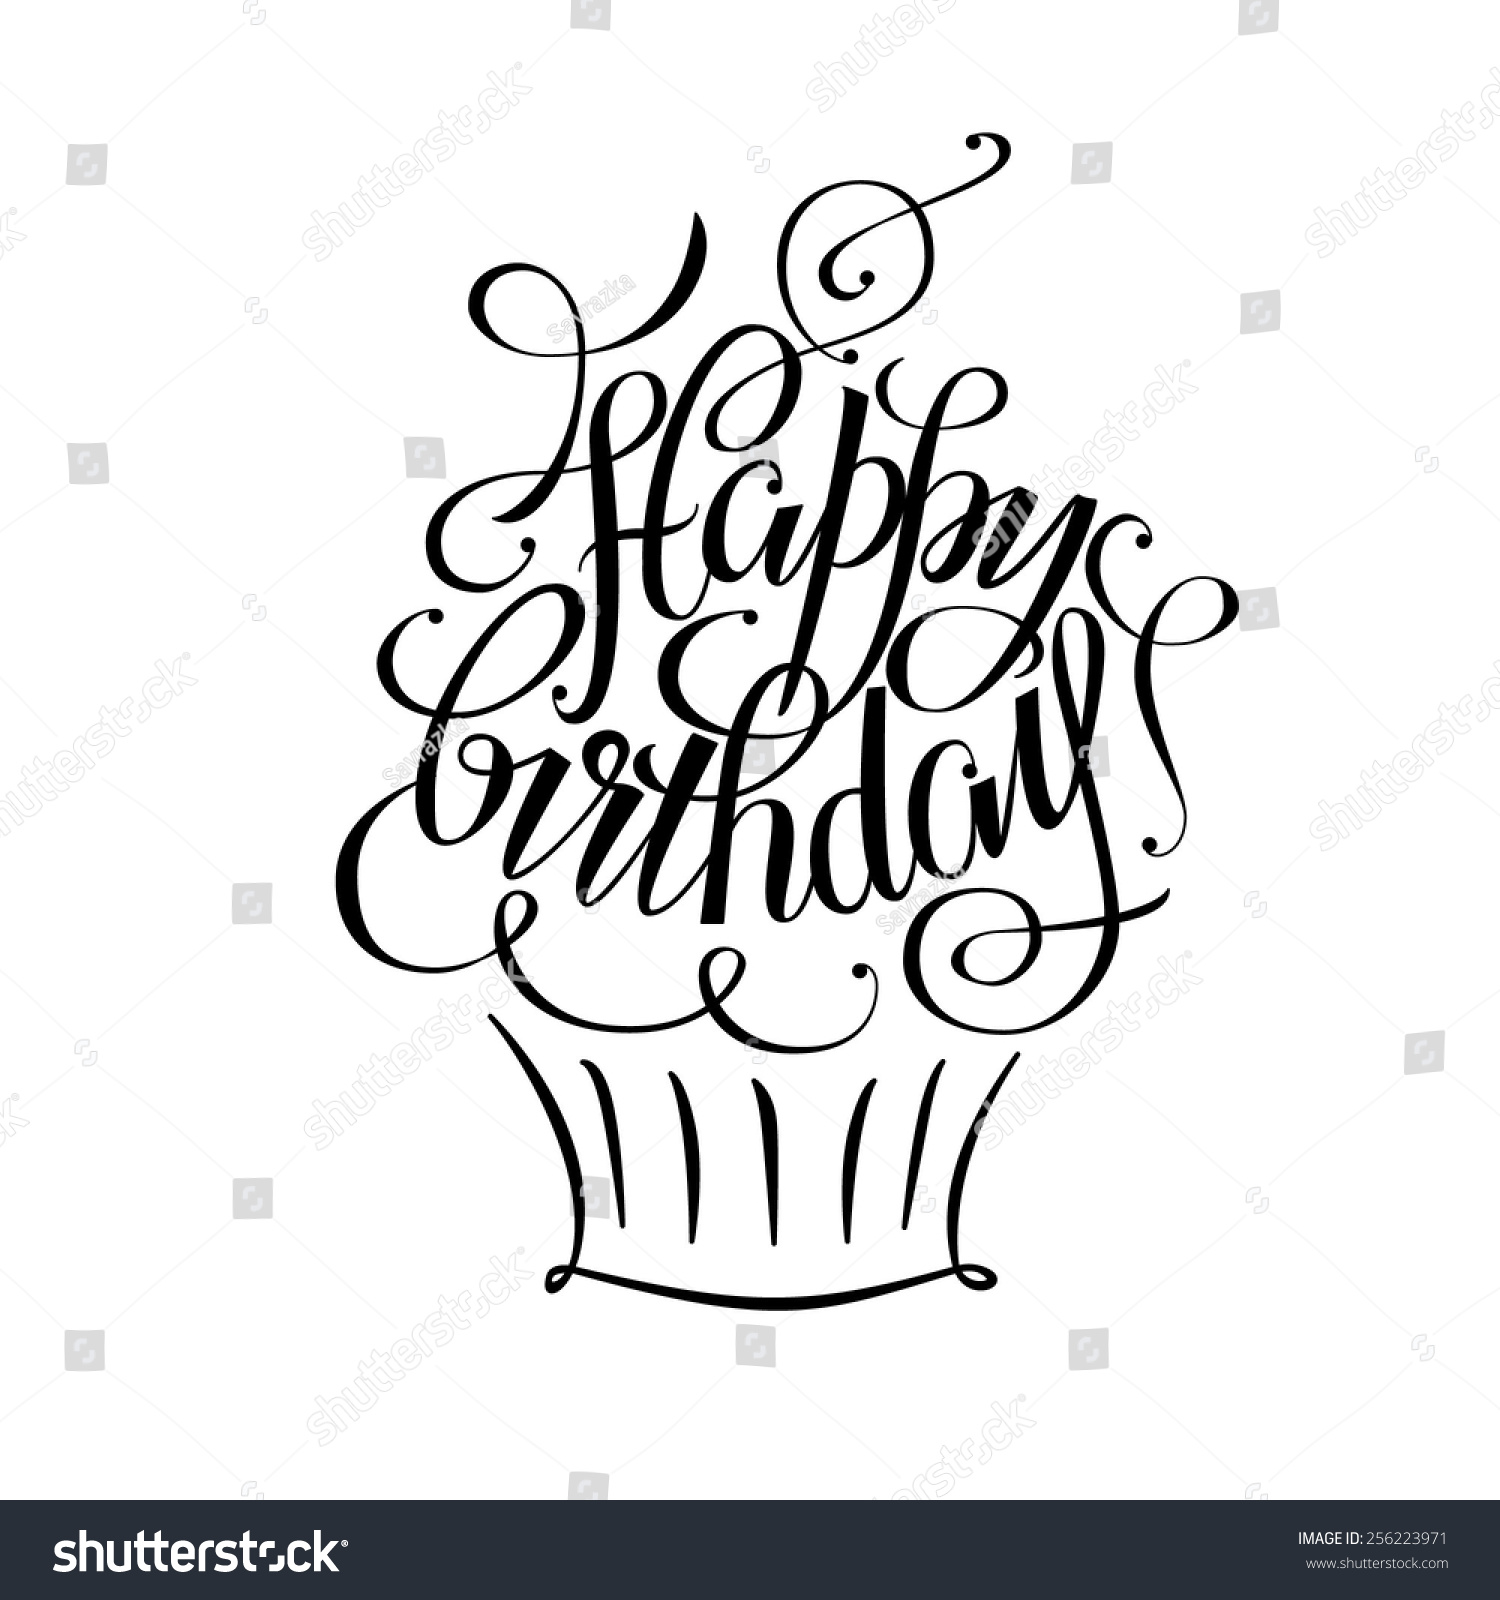 Postcards birthday happy birthday hand lettering stock Images of calligraphy